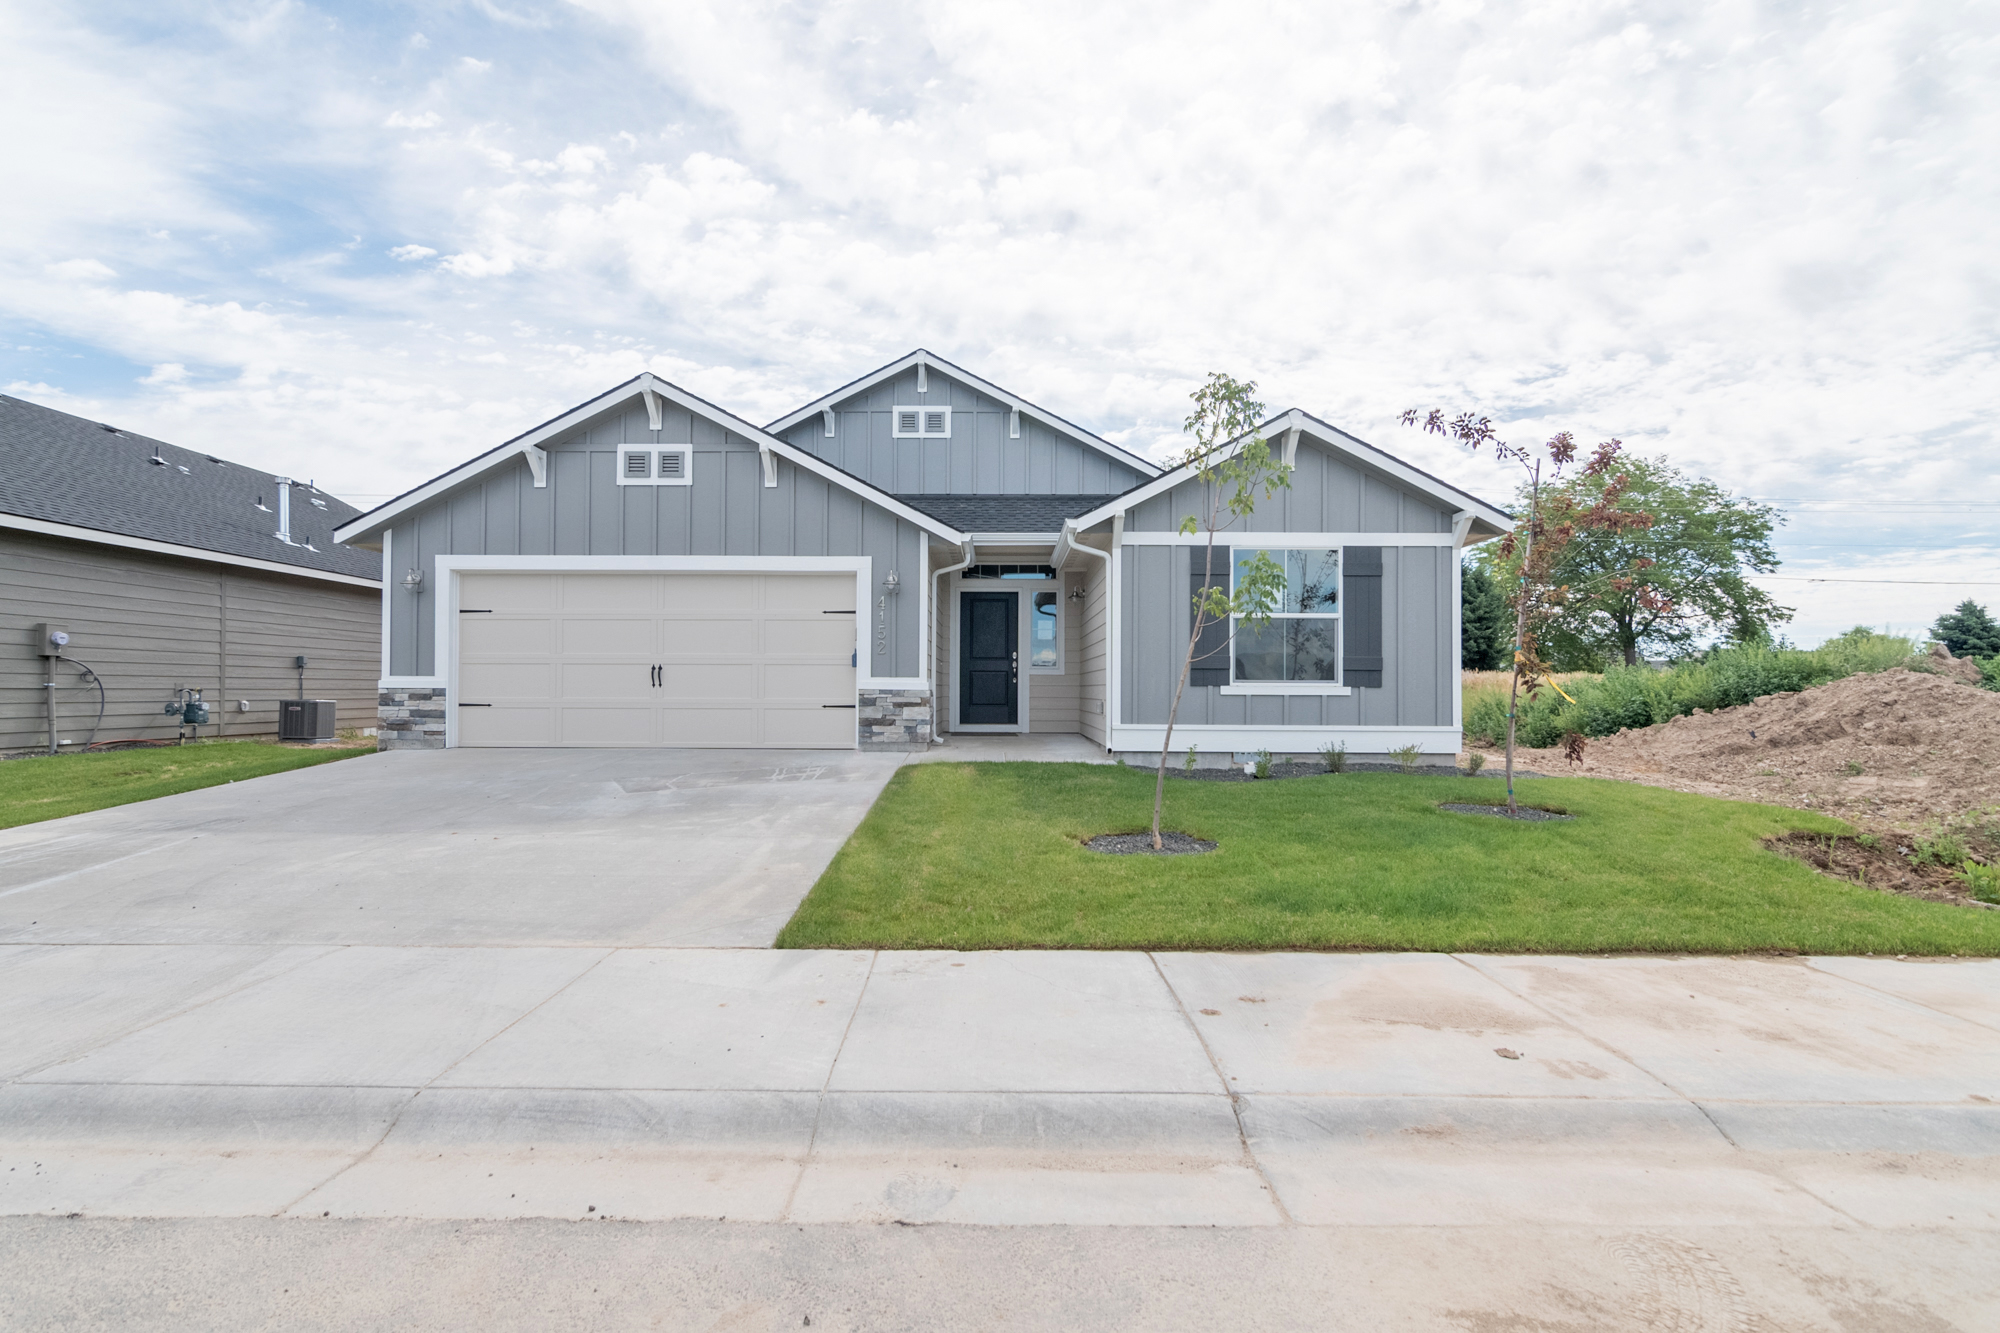 New Home Builders Idaho Falls